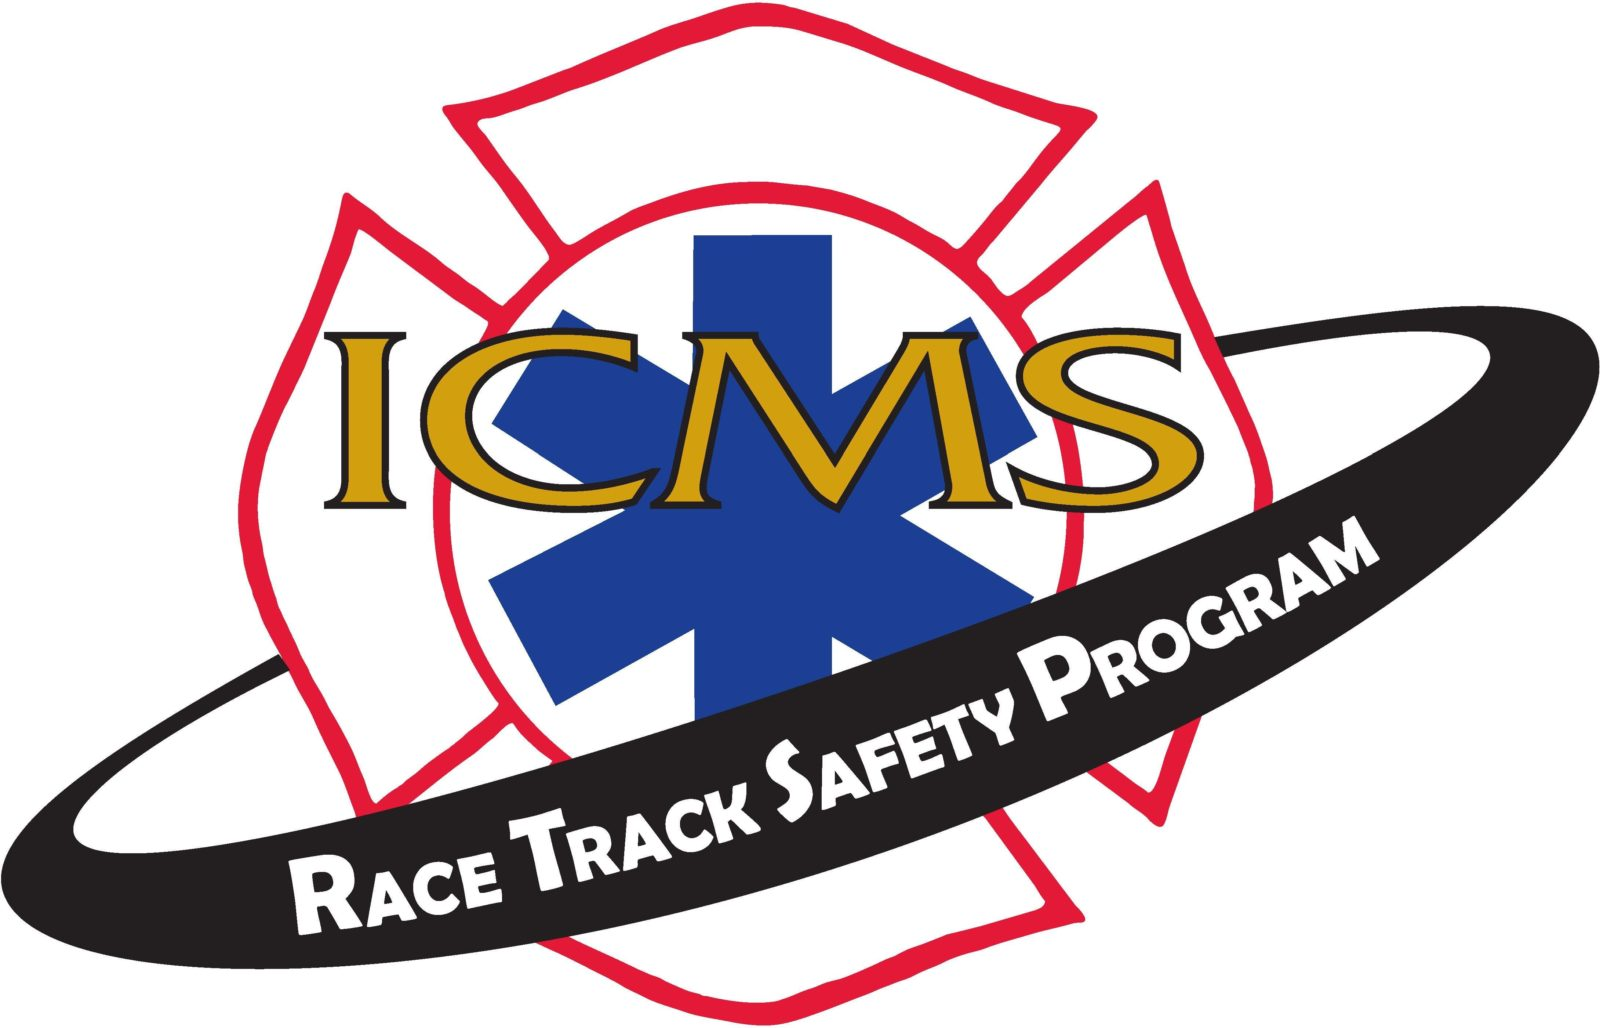 http://racetracksafety.net/wp-content/uploads/2016/10/cropped-ICMS-LOGO-1.jpg